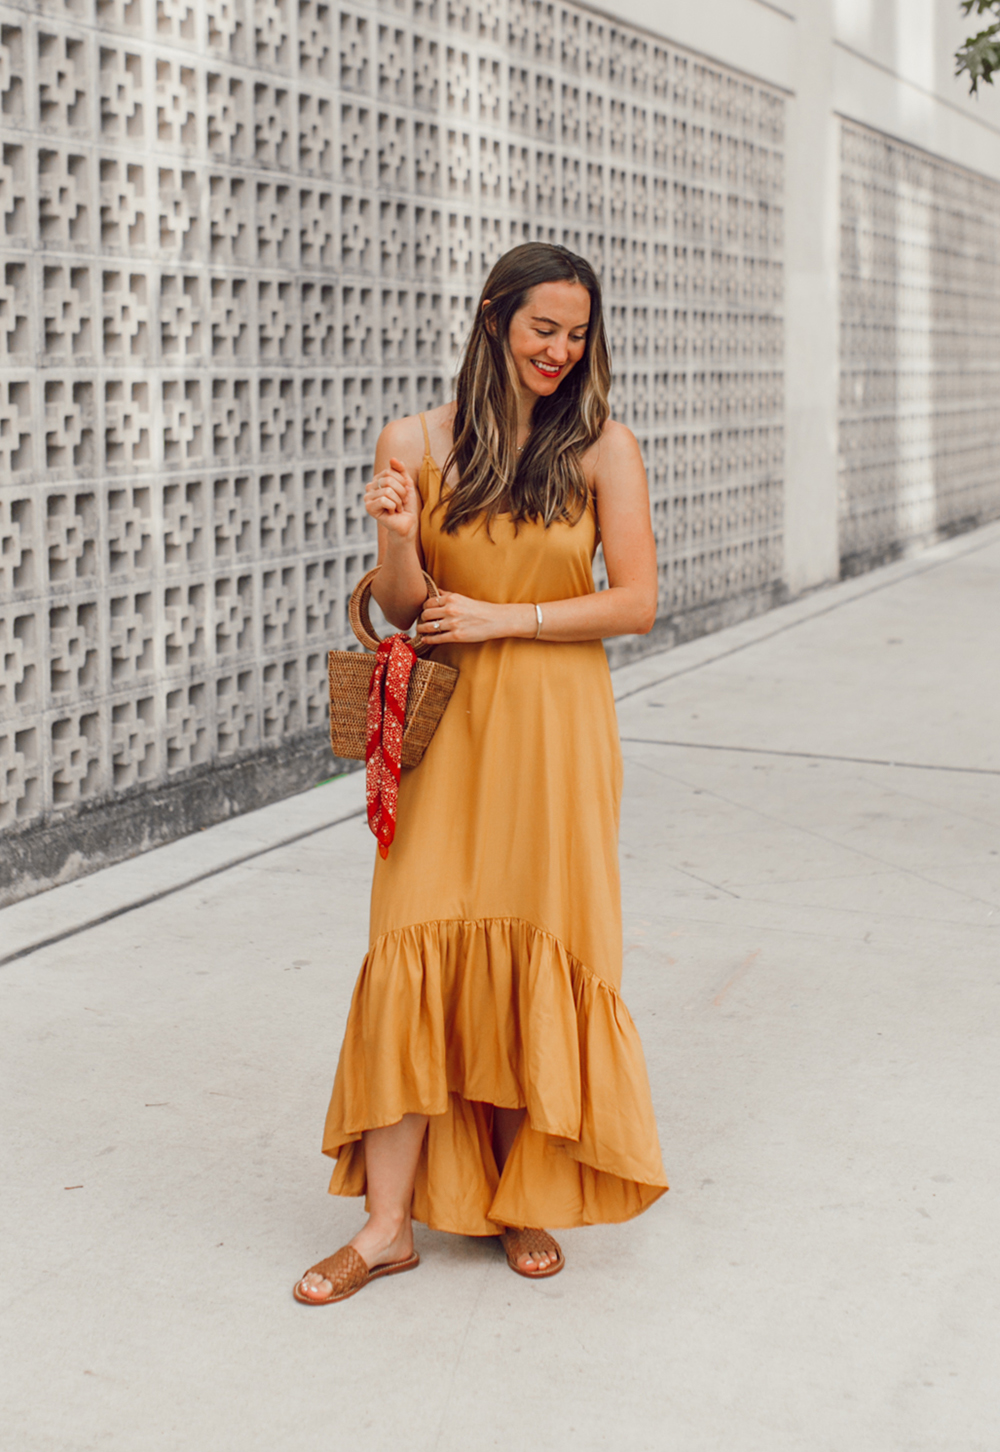 livvyland-blog-olivia-watson-mustard-canary-yellow-maxi-dress-love-sadie-summer-date-night-outfit-7